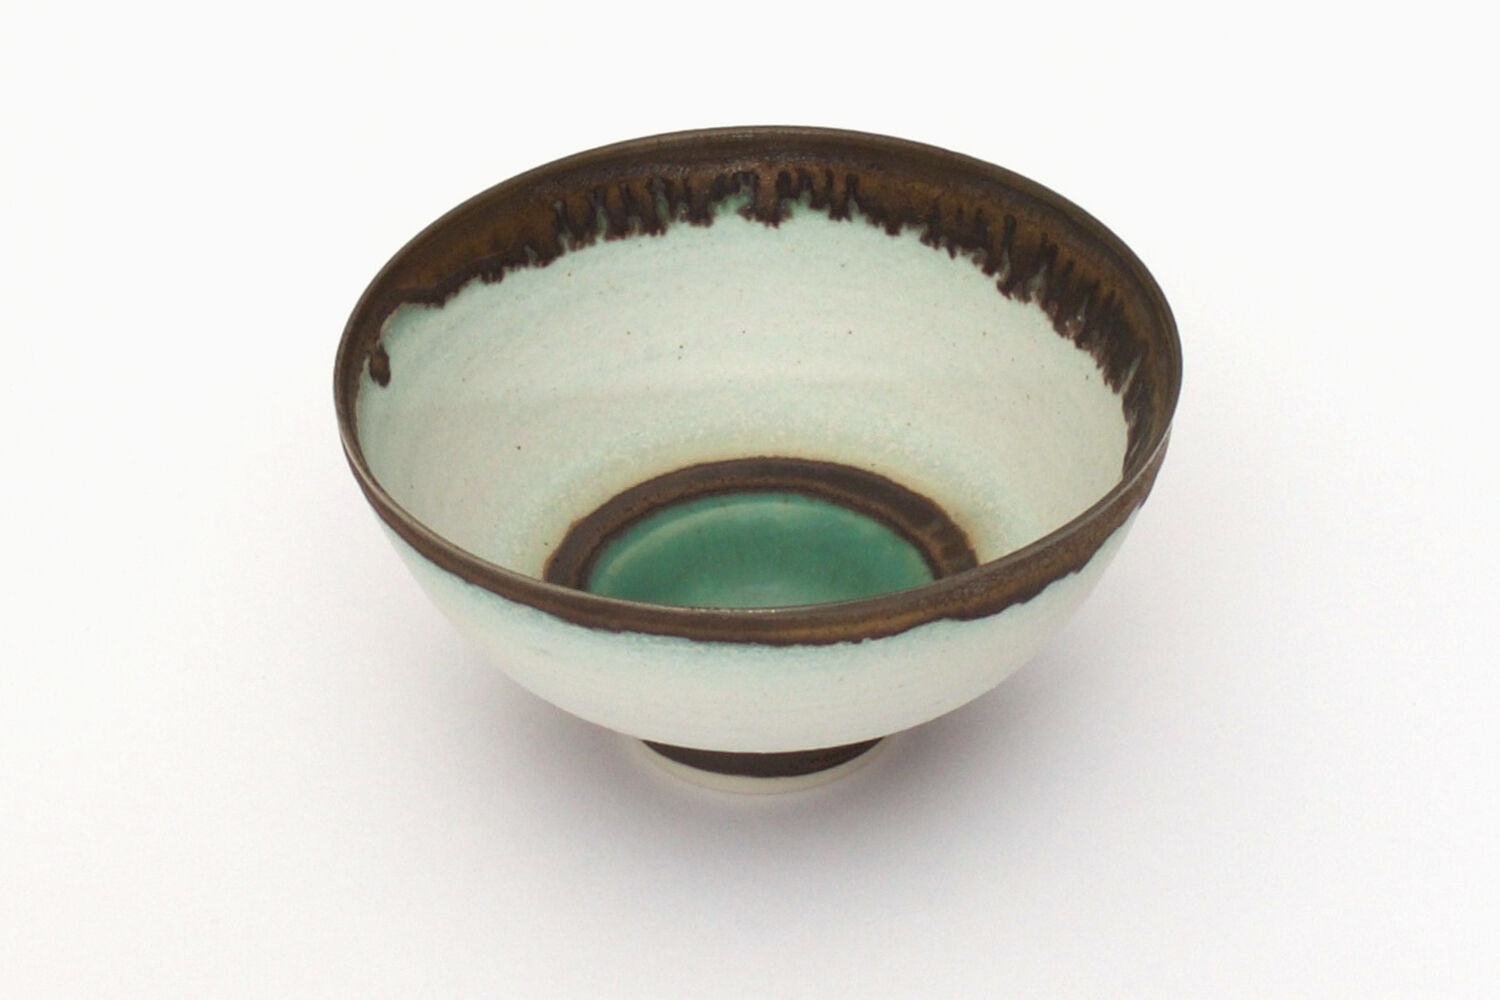 Peter Wills Ceramic Bowl 142